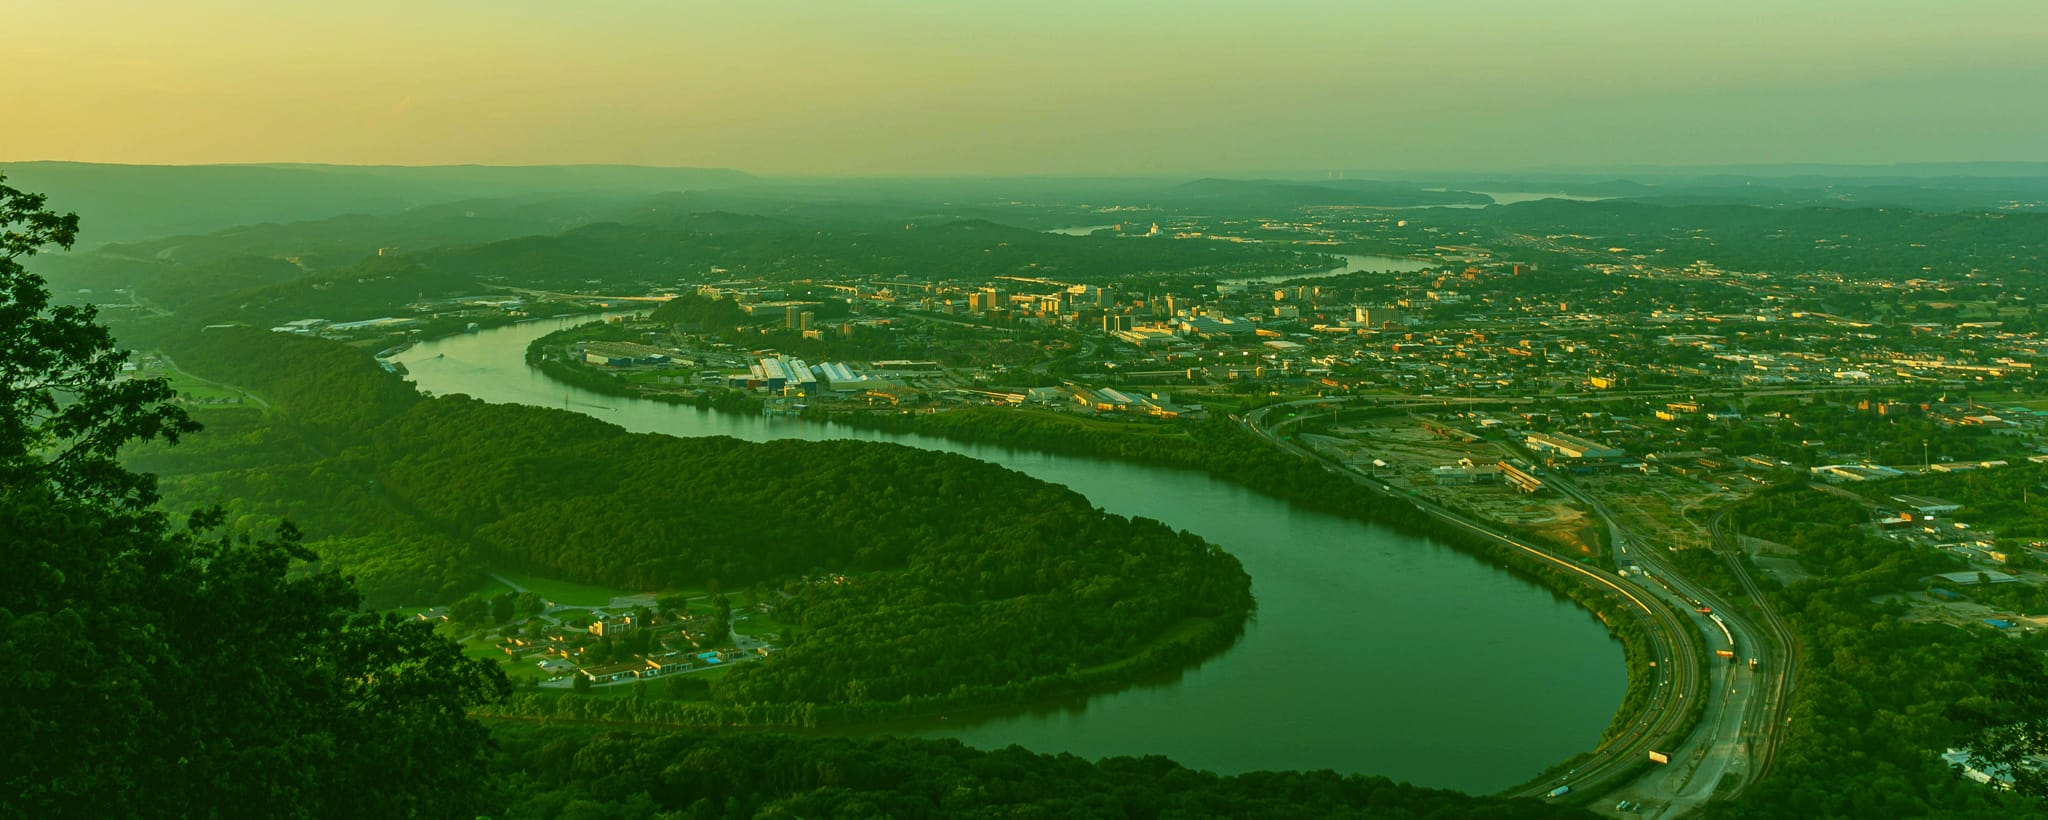 TN river passing by a city